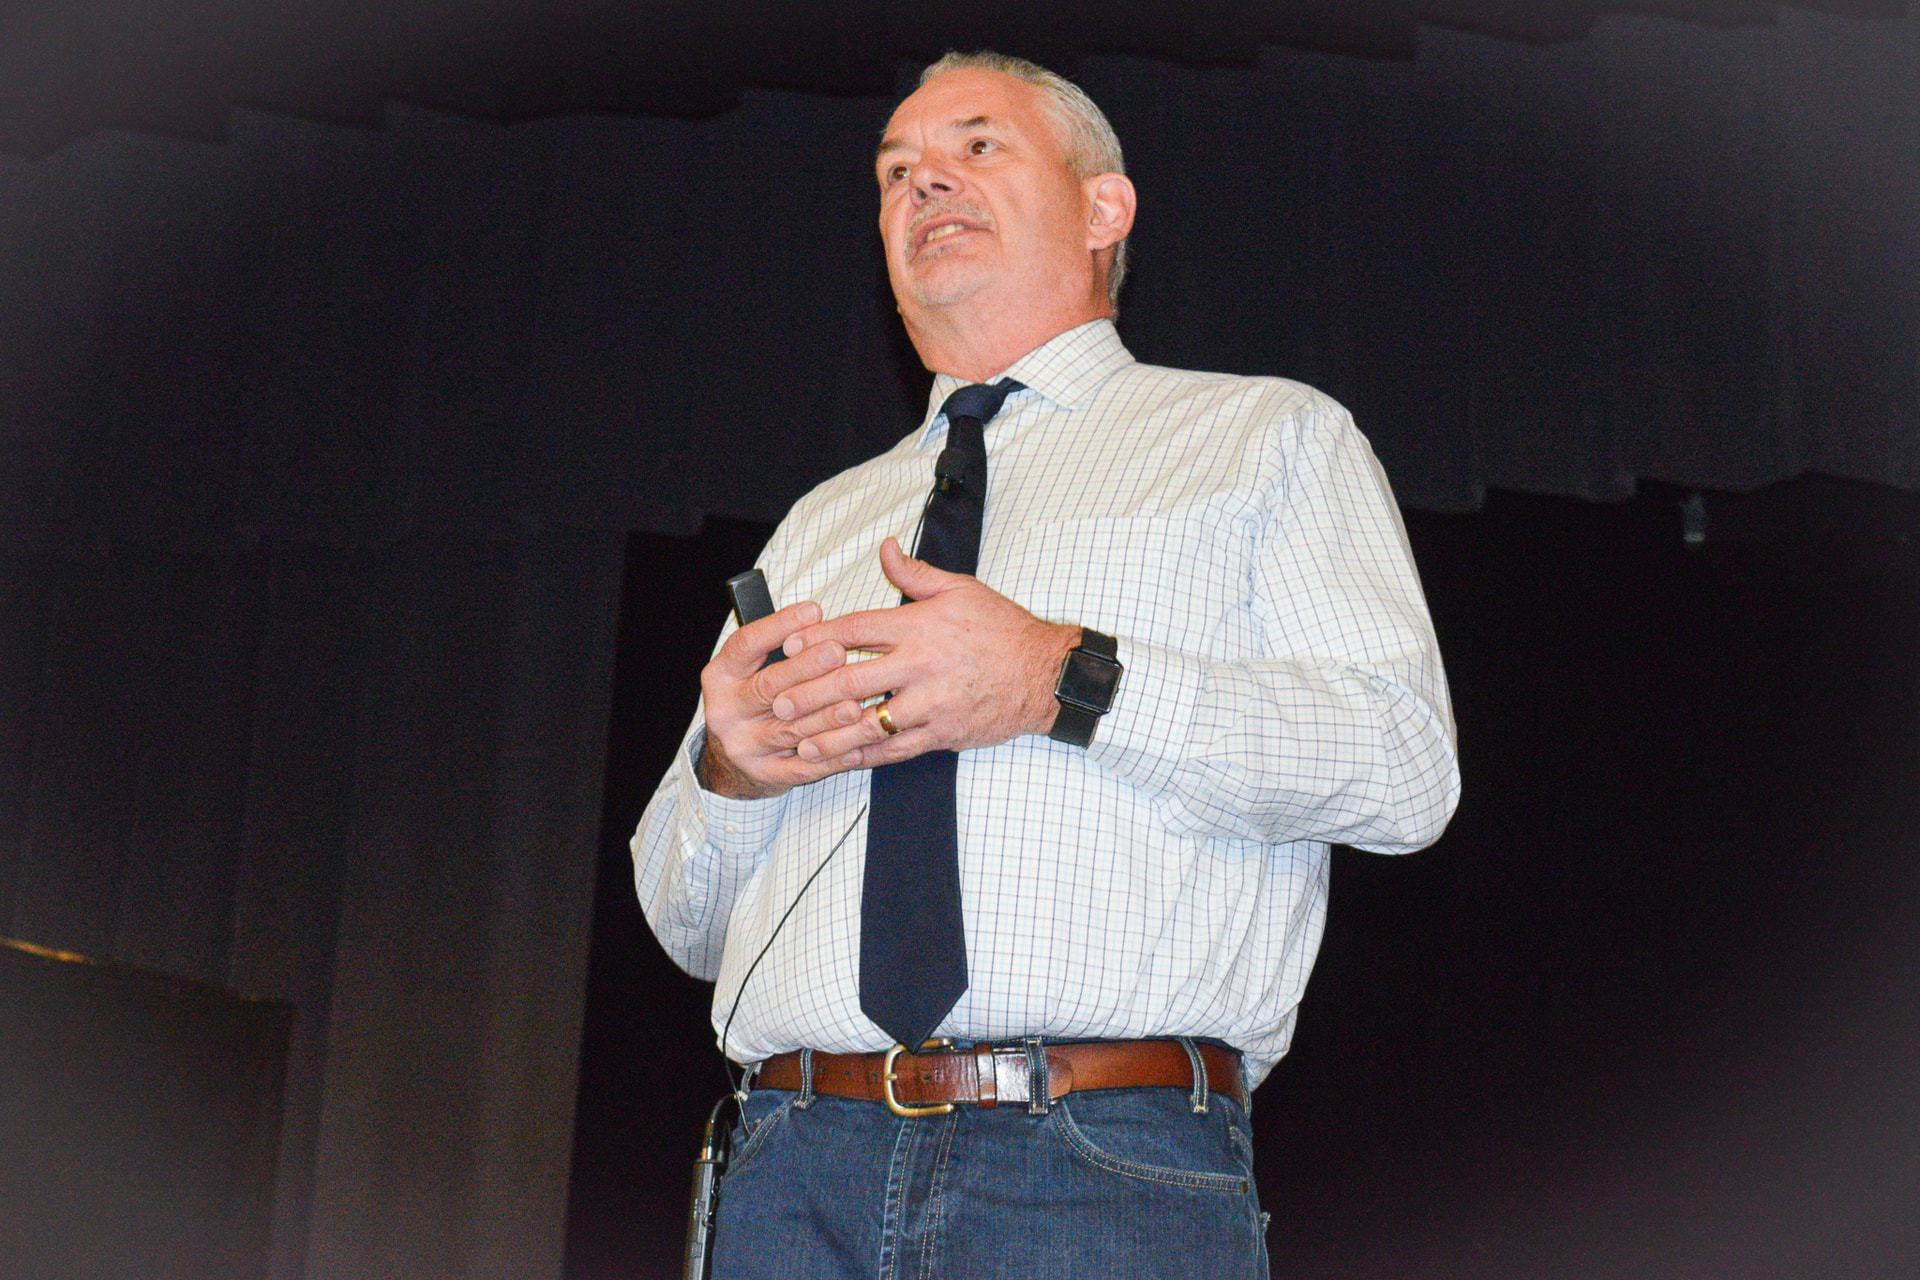 Nationally acclaimed speaker teaches school employees about the impact of trauma on learning